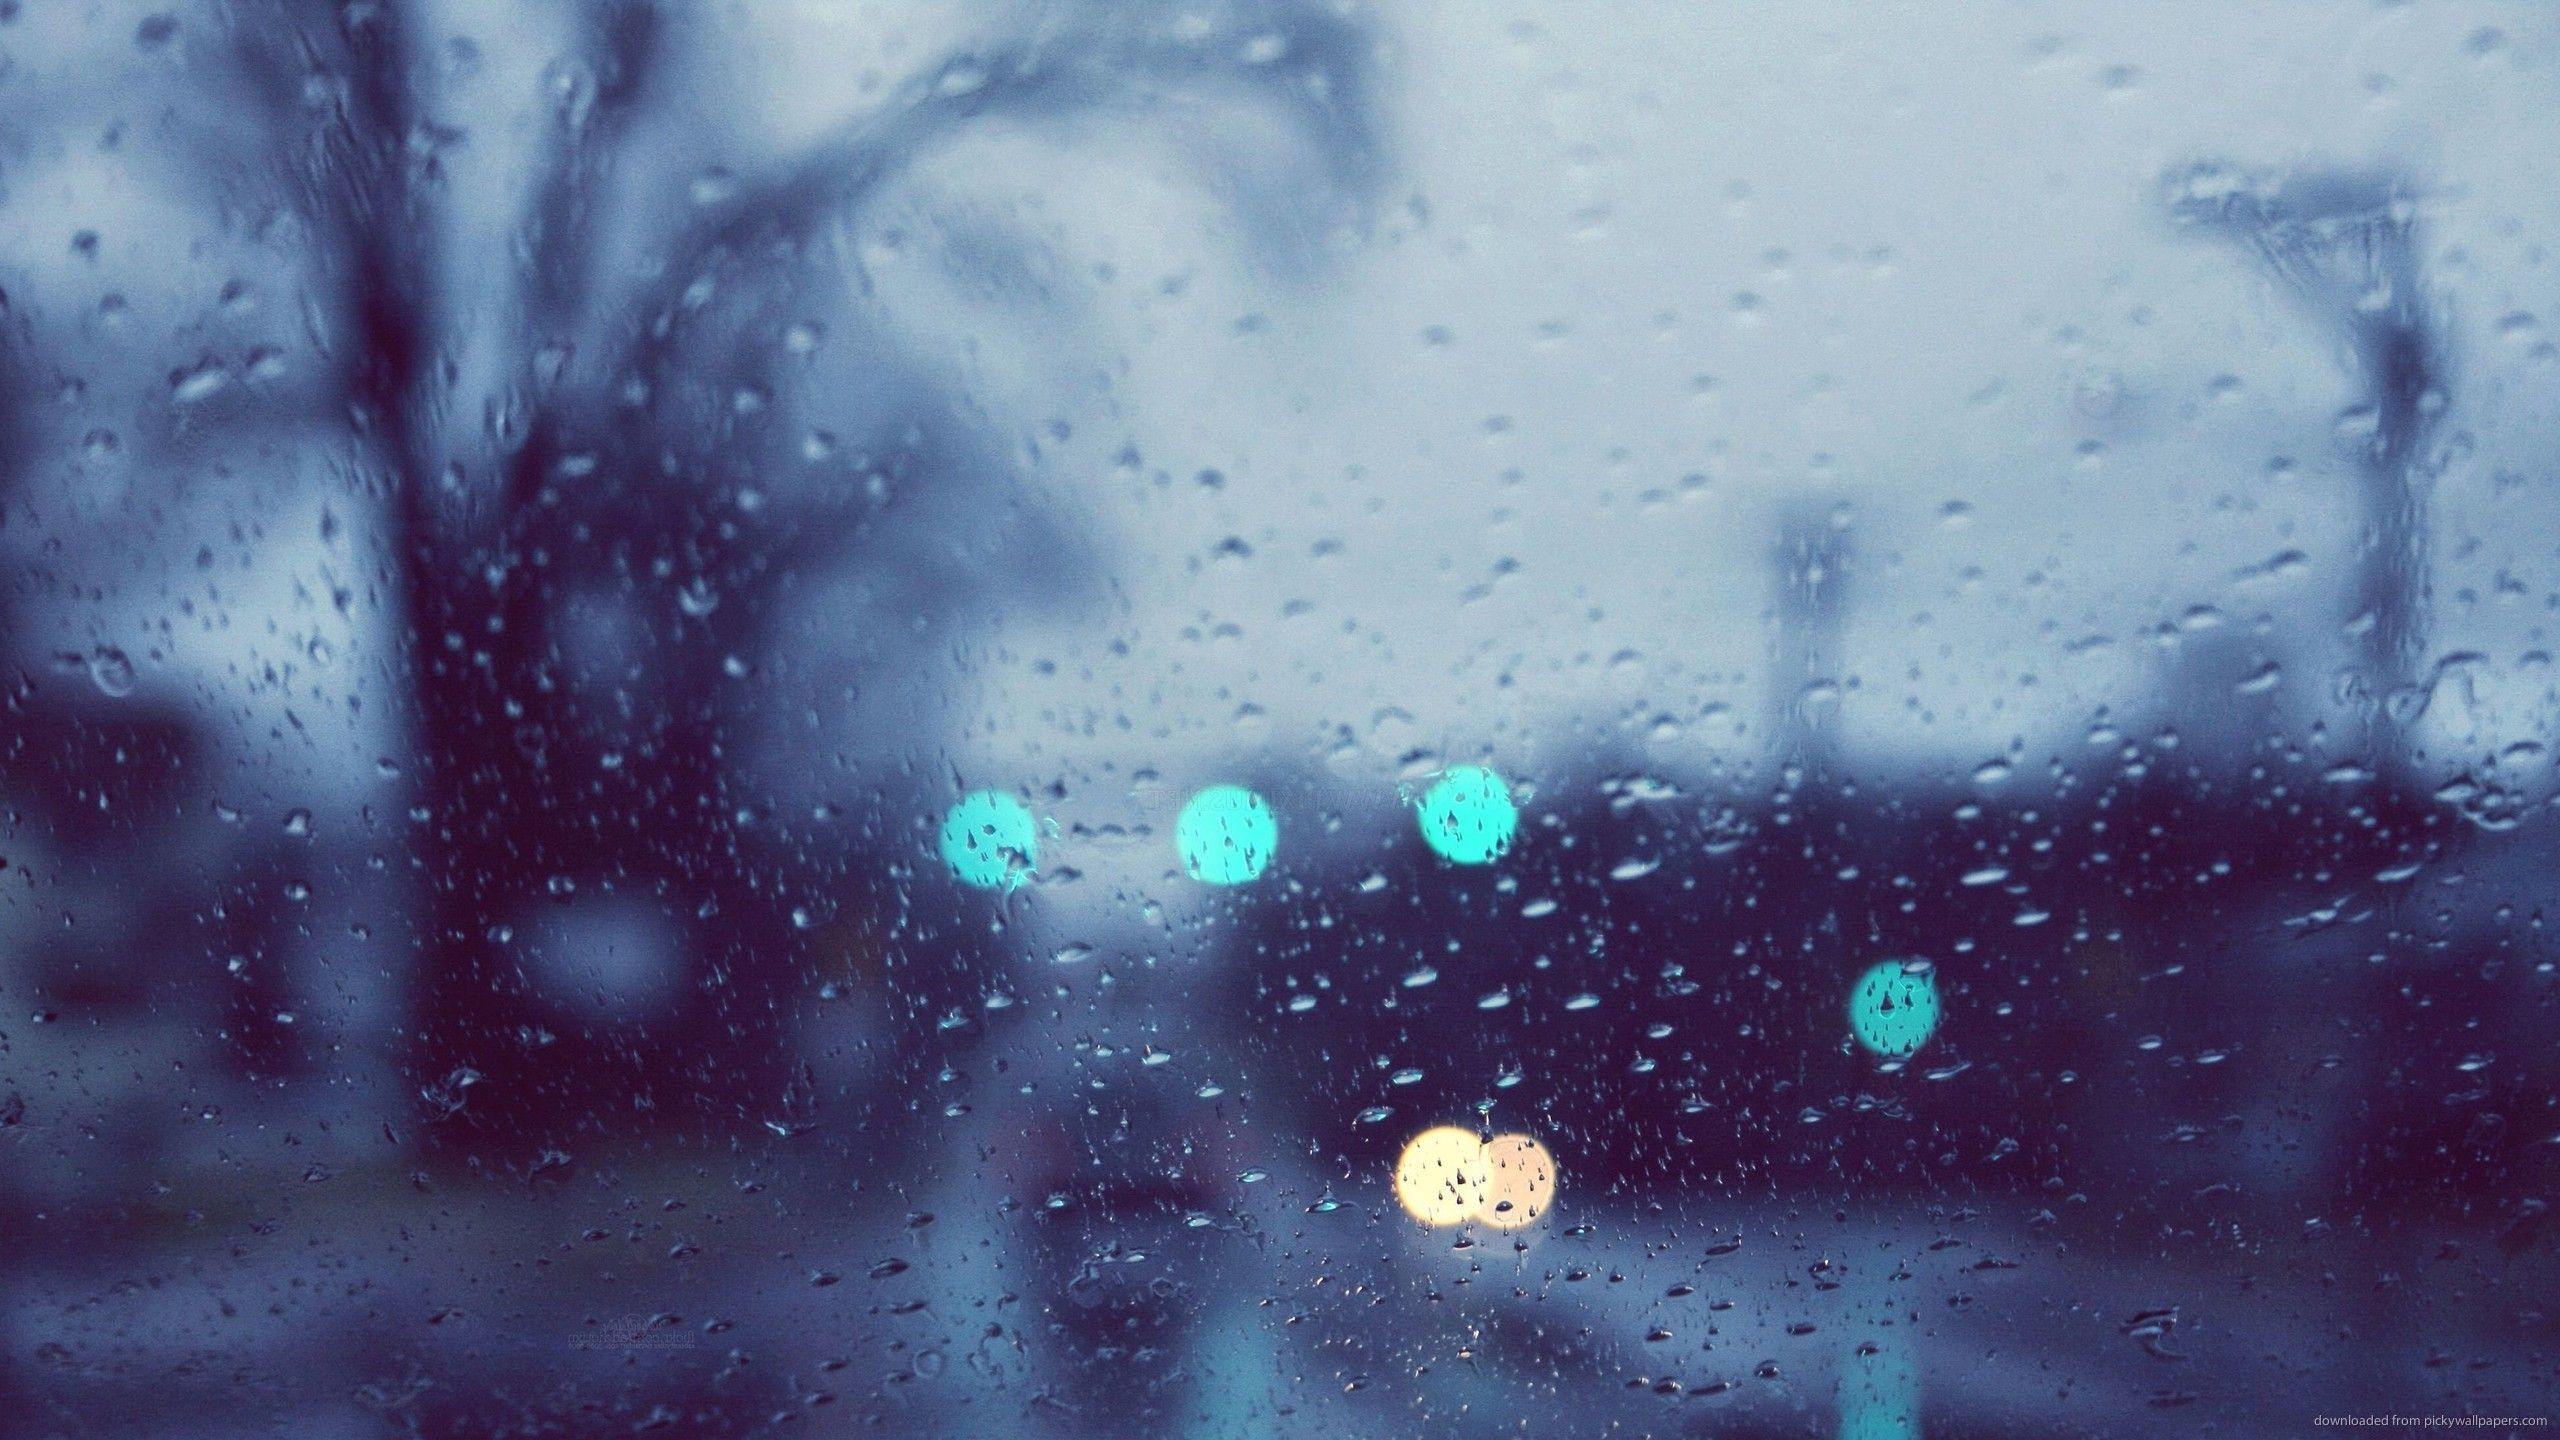 Blur Hd Wallpapers Group 1920 1200 Blurry Picture Wallpapers 28 Wallpapers Adorable Wallpapers Rain Wallpapers Blurry Pictures Scenery Wallpaper